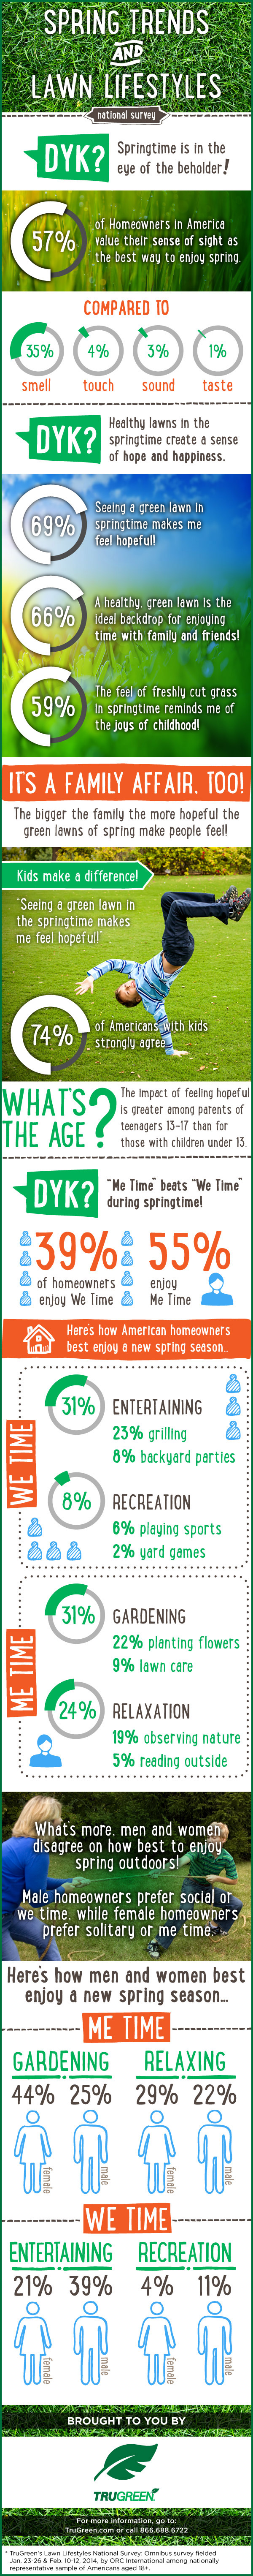 trugreen-infographic-spring-lawn72